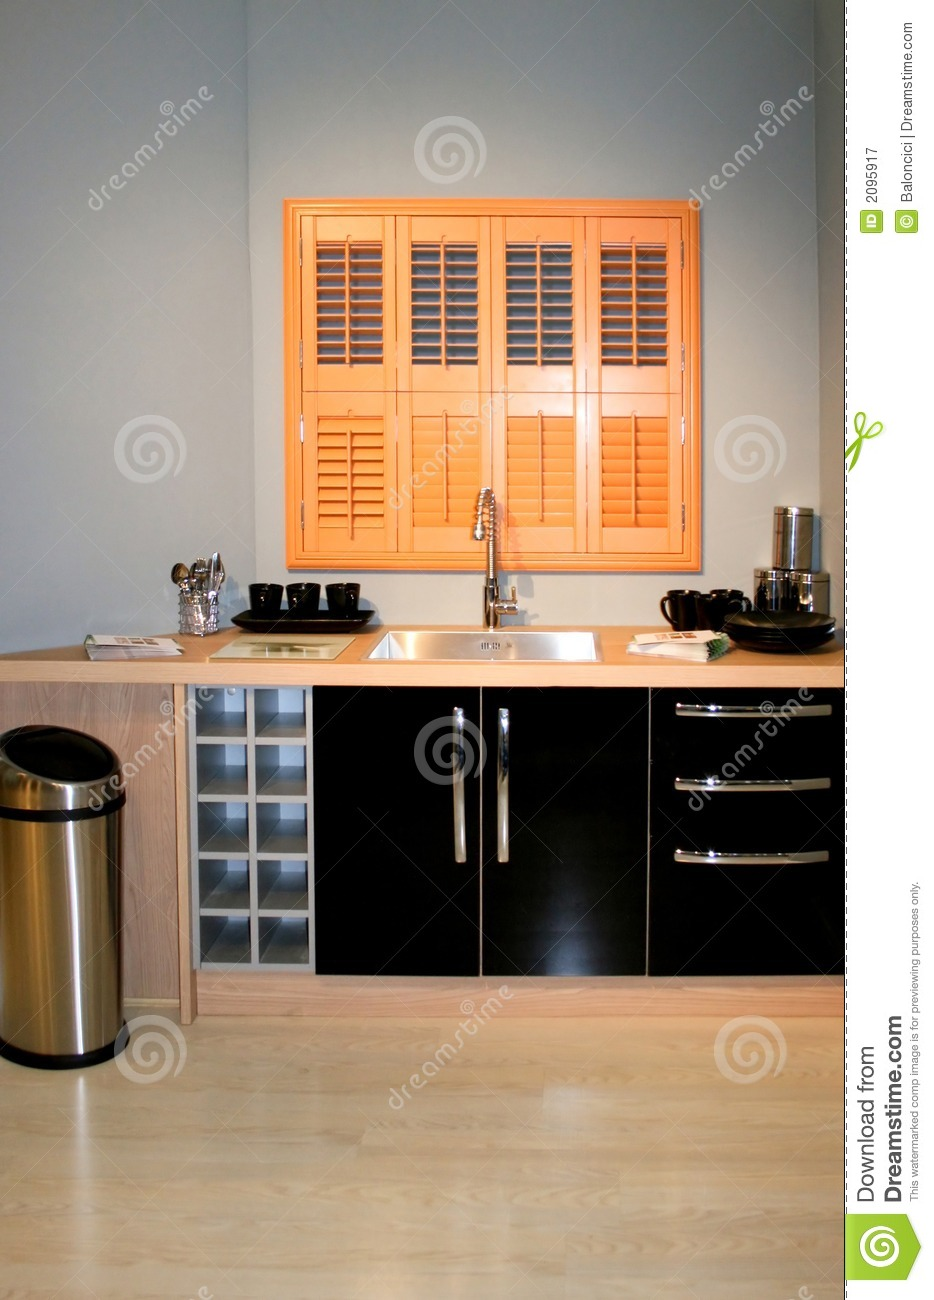 picole cucine la scelta giusta variata sul design della casa. Black Bedroom Furniture Sets. Home Design Ideas